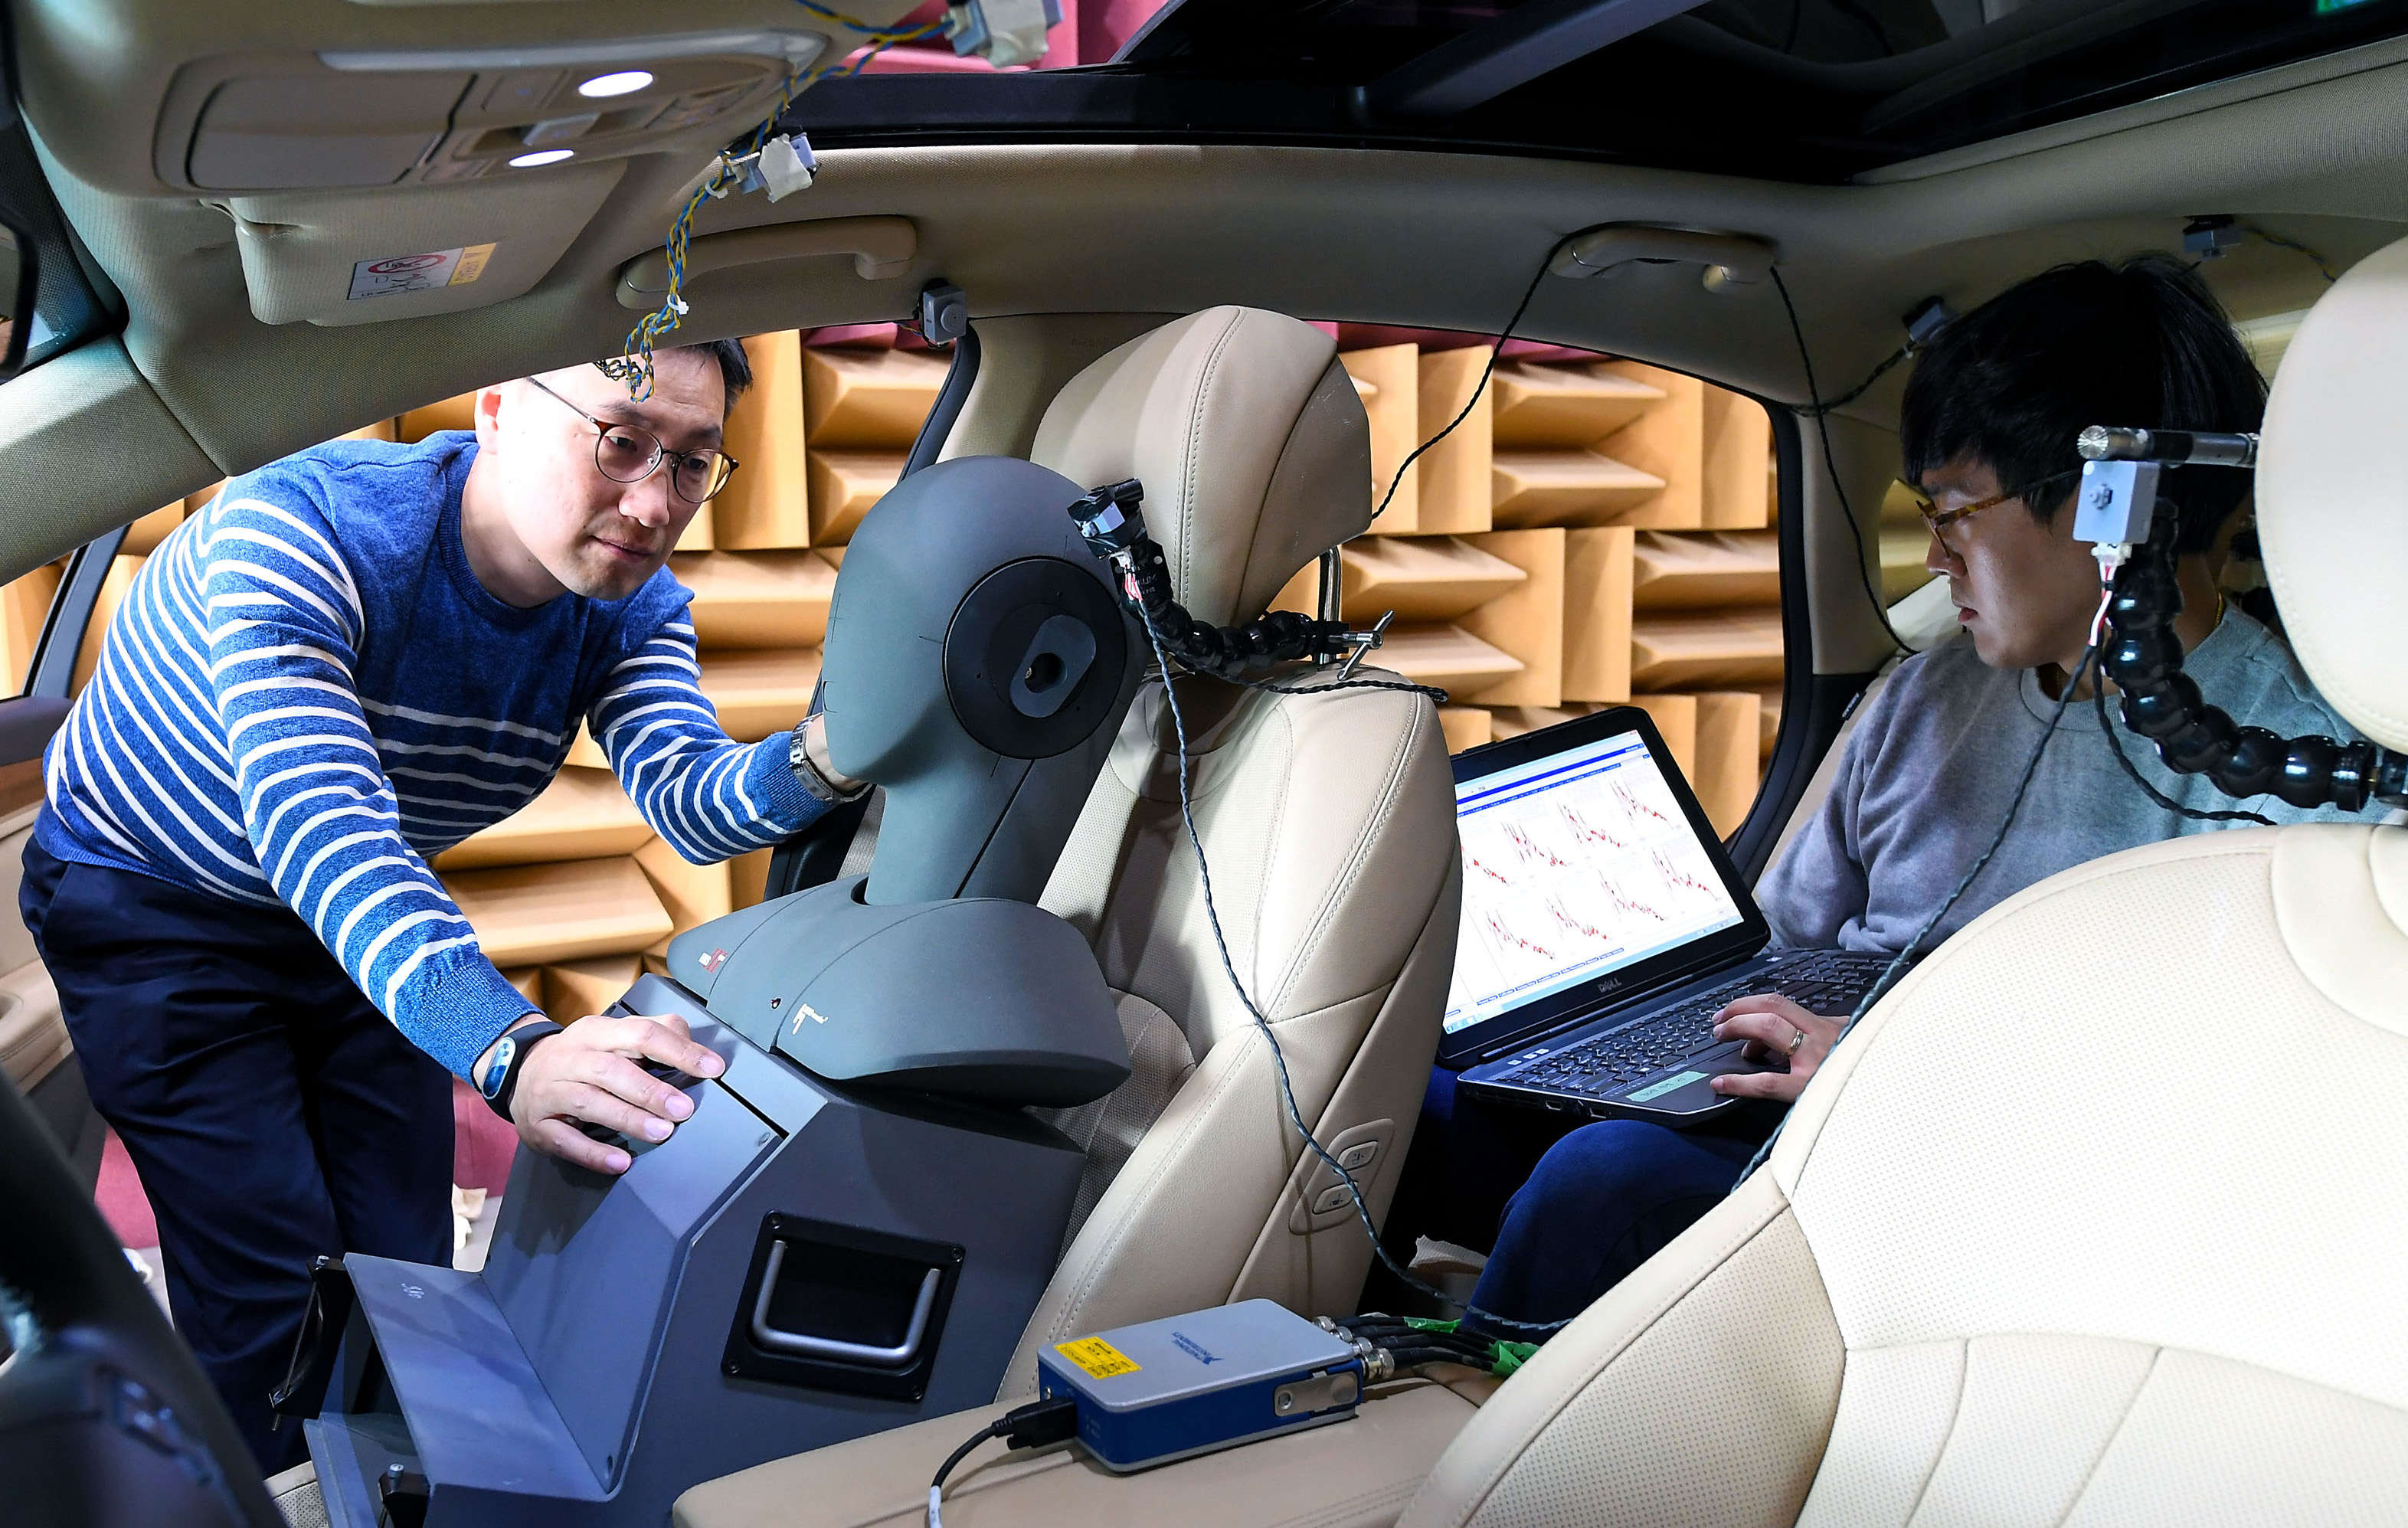 Hyundai says in the release that with the first-ever RANC technology, the automaker is able to greatly improve in-cabin quietness. This technology will be applied in the upcoming Genesis model.